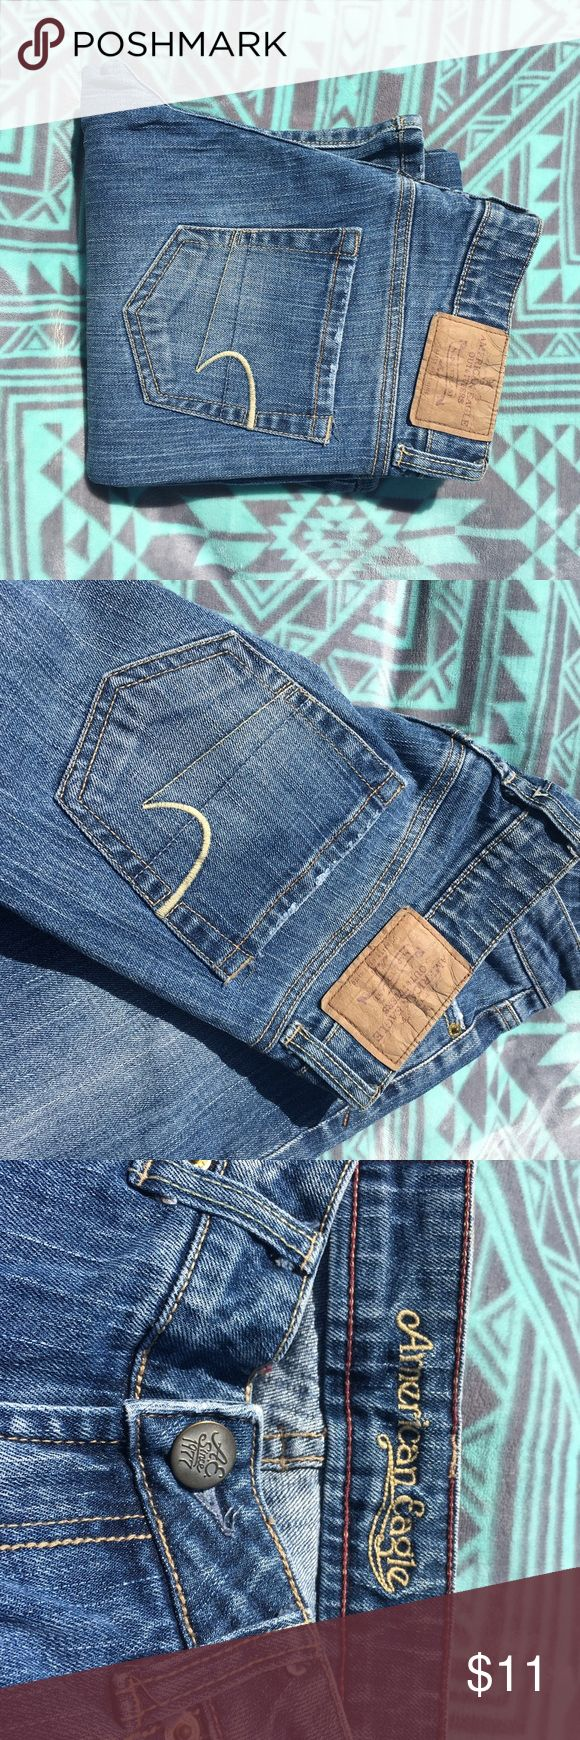 Size 2 Regular American Eagle Hipster Jeans FLASH SALE MARK DOWN   Brand: American Eagle outfitters   Size: 2 Regular   Details: these are their older style jeans. Hipster style. These are like new never worn just folded and stored. Medium wash.   Condition: like new NWOT   Extra info: older style. Washed never worn American Eagle Outfitters Jeans Boot Cut